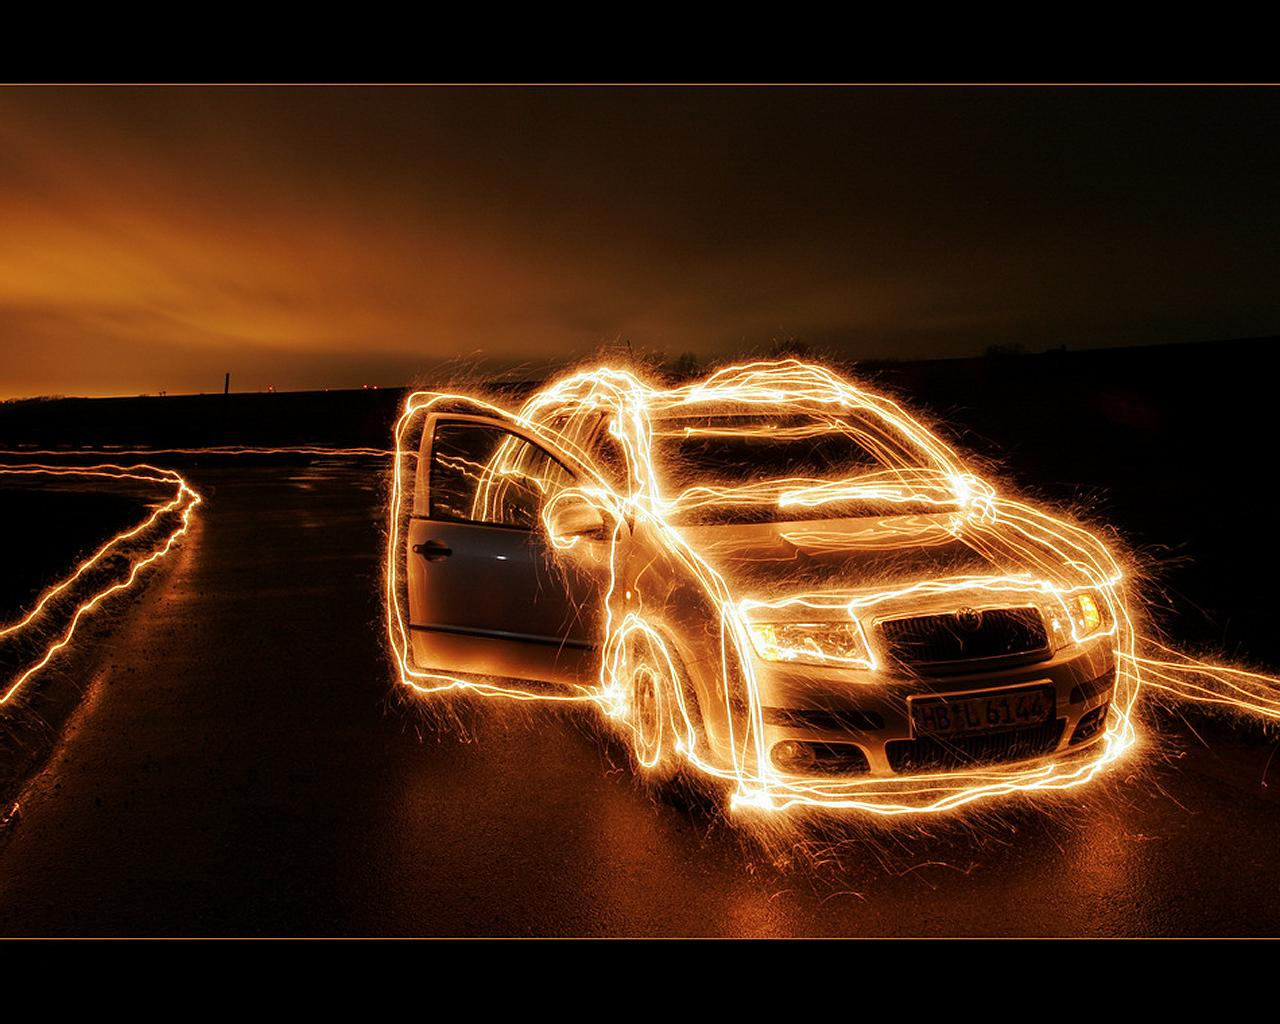 Cool 3d Car Backgrounds 10318 Hd Wallpapers in 3D   Imagescicom 1280x1024